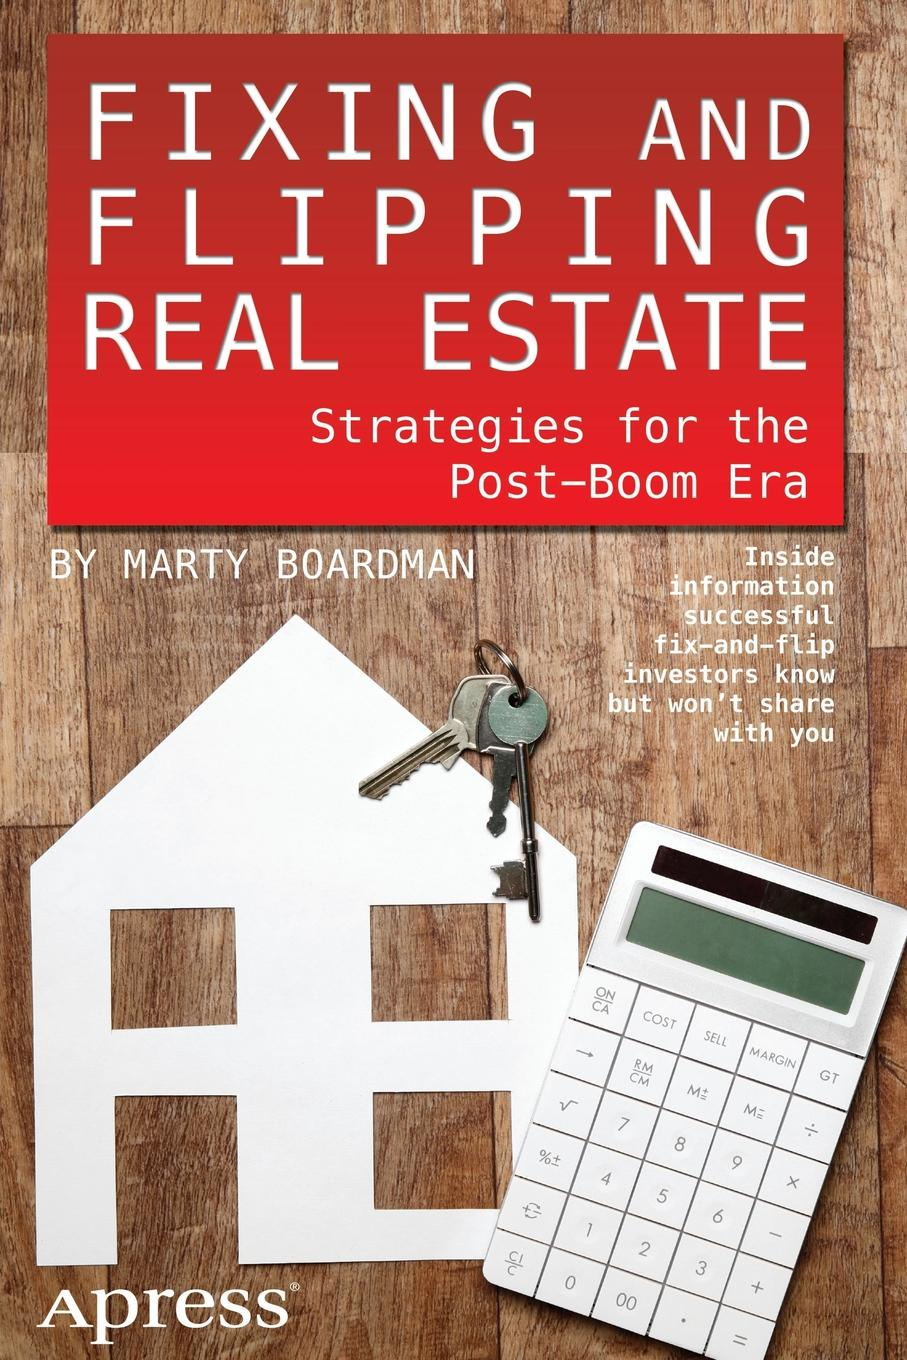 Marty Boardman Fixing and Flipping Real Estate. Strategies for the Post-Boom Era stephen meister b commercial real estate restructuring revolution strategies tranche warfare and prospects for recovery